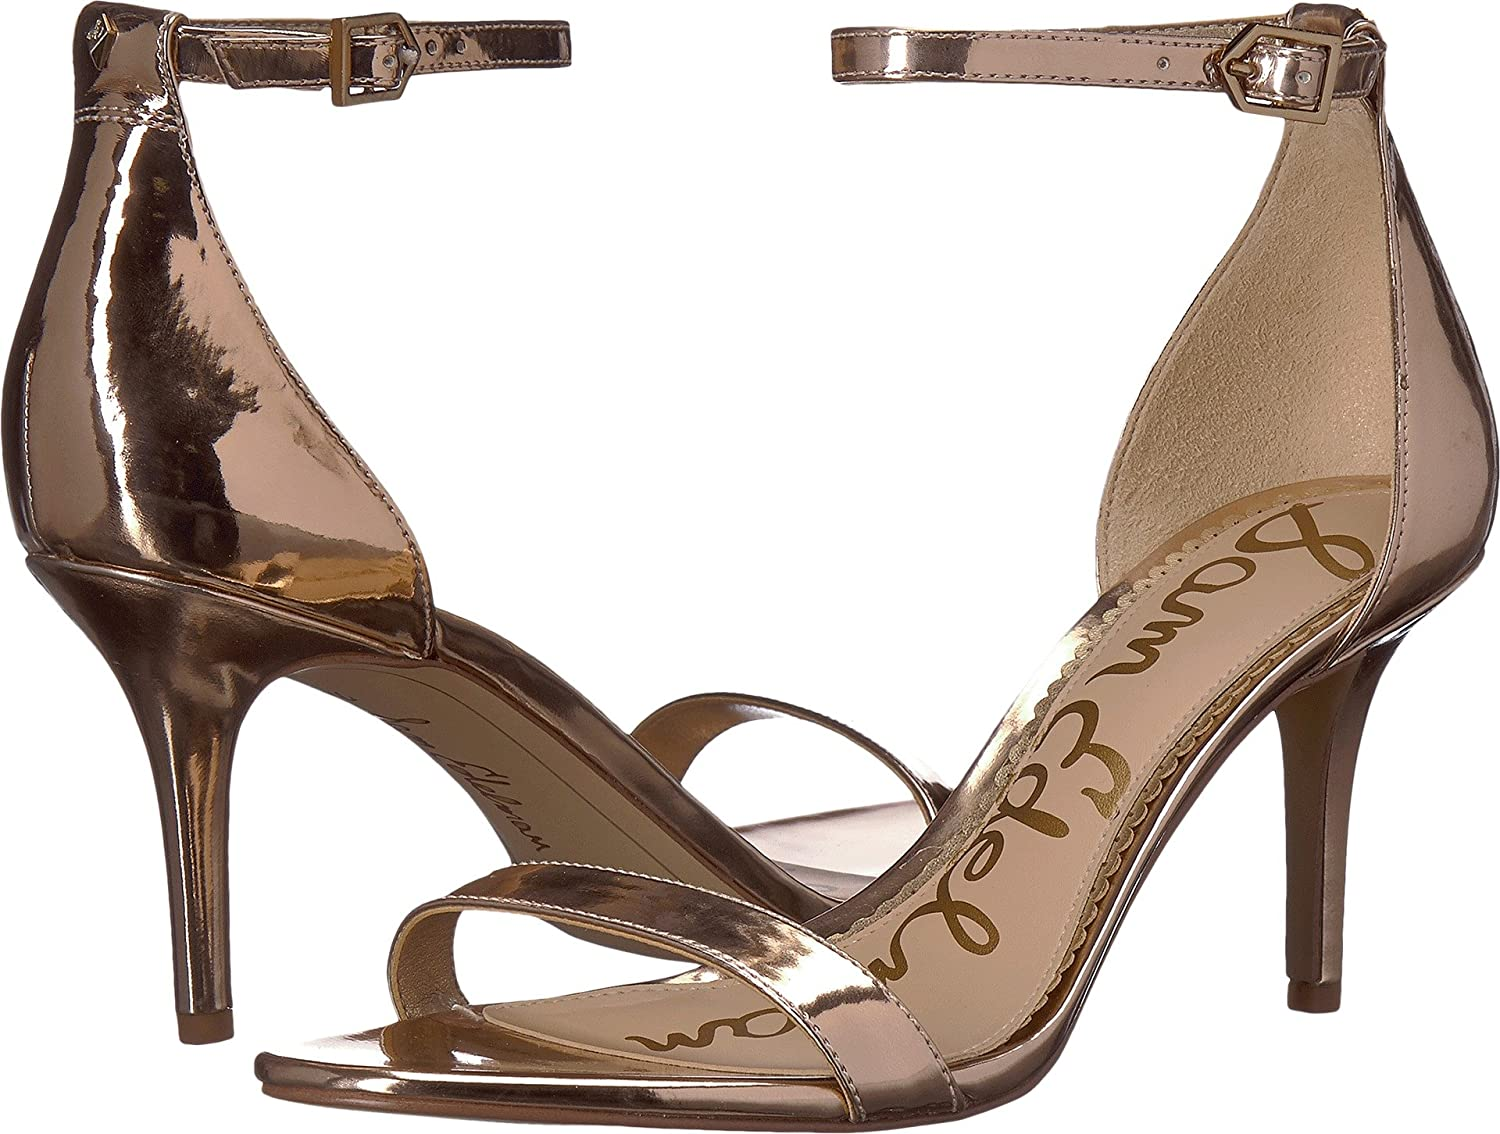 Sam Edelman Women's Patti Heeled Sandal B072W4DGXJ 7 W US|Oro Remato